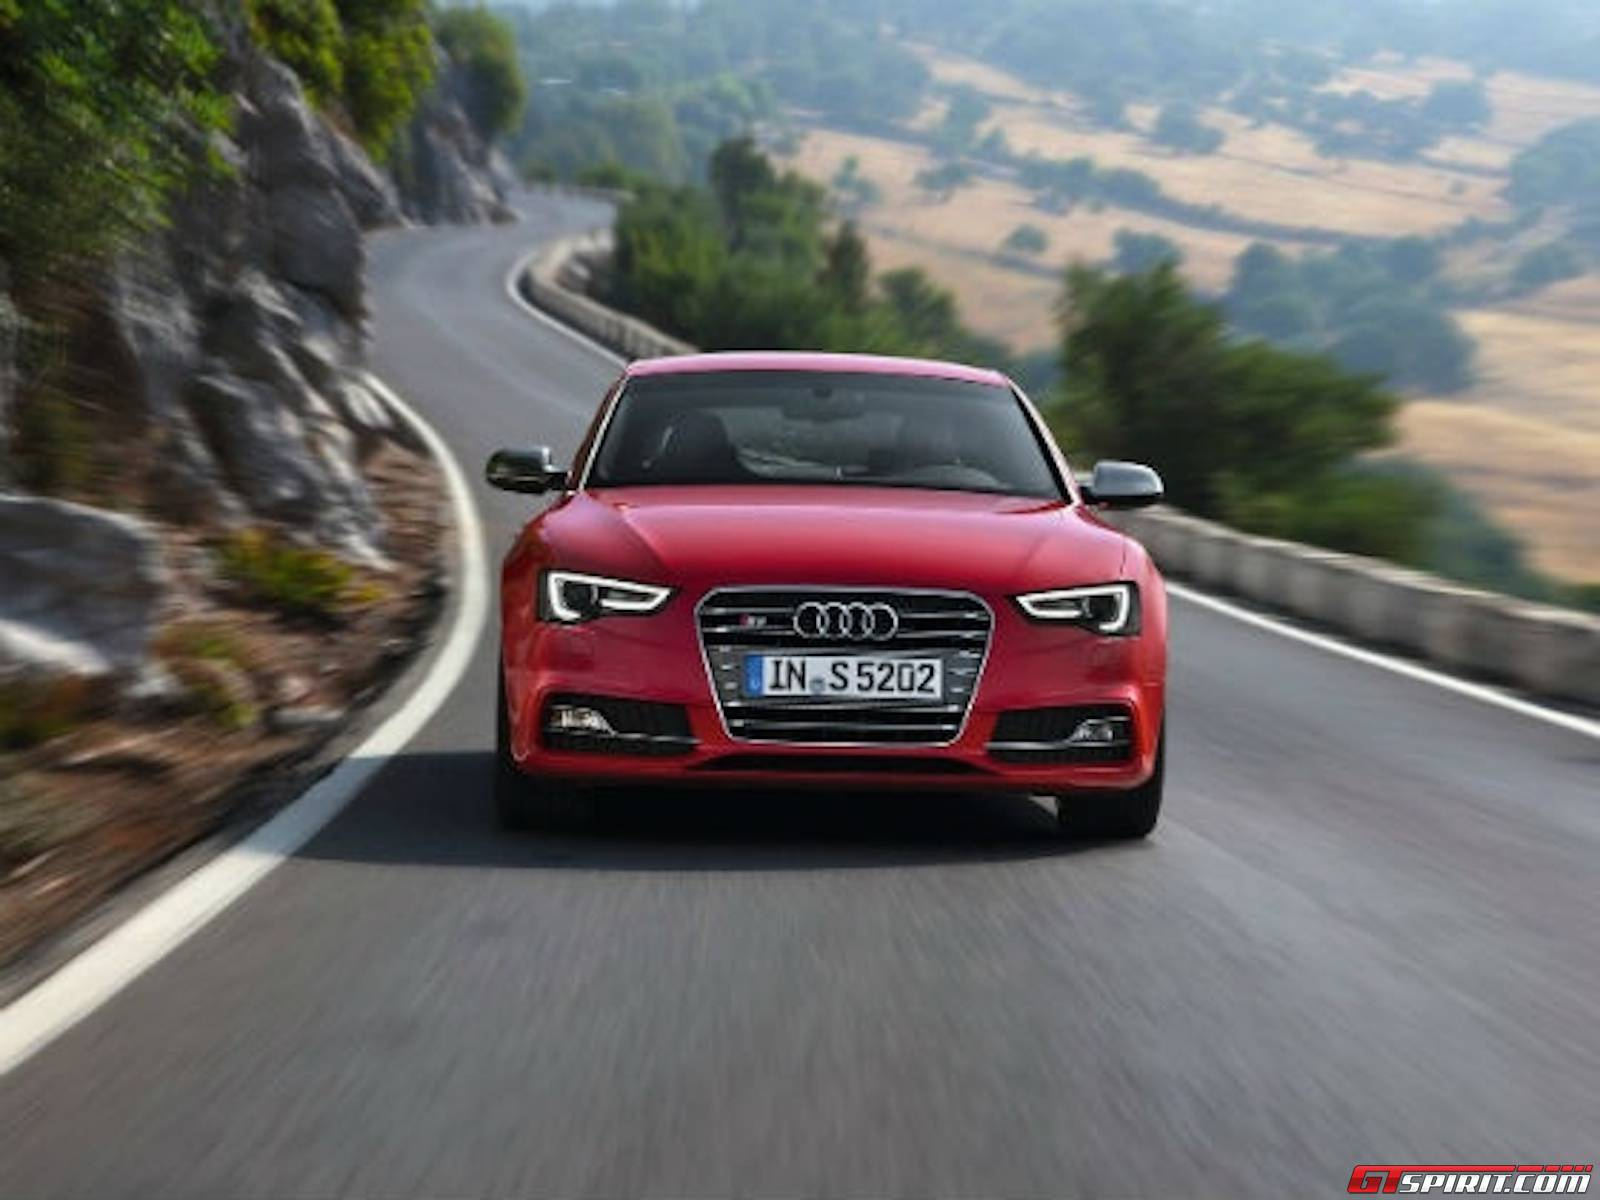 Audi India to Launch S5 Sportback in Mid-2015 - GTspirit on nissan 370z convertible, audi a4, 135i convertible, audi s6, audi a 6 convertible, bmw convertible, audi s4 convertible, audi rs5 convertible, convertible convertible, audi s7, toyota fj cruiser convertible, audi s8, white audi convertible, audi a5, audi cars, audi tt convertible, audi a7, audi hardtop convertible, mini cooper convertible, audi r8,